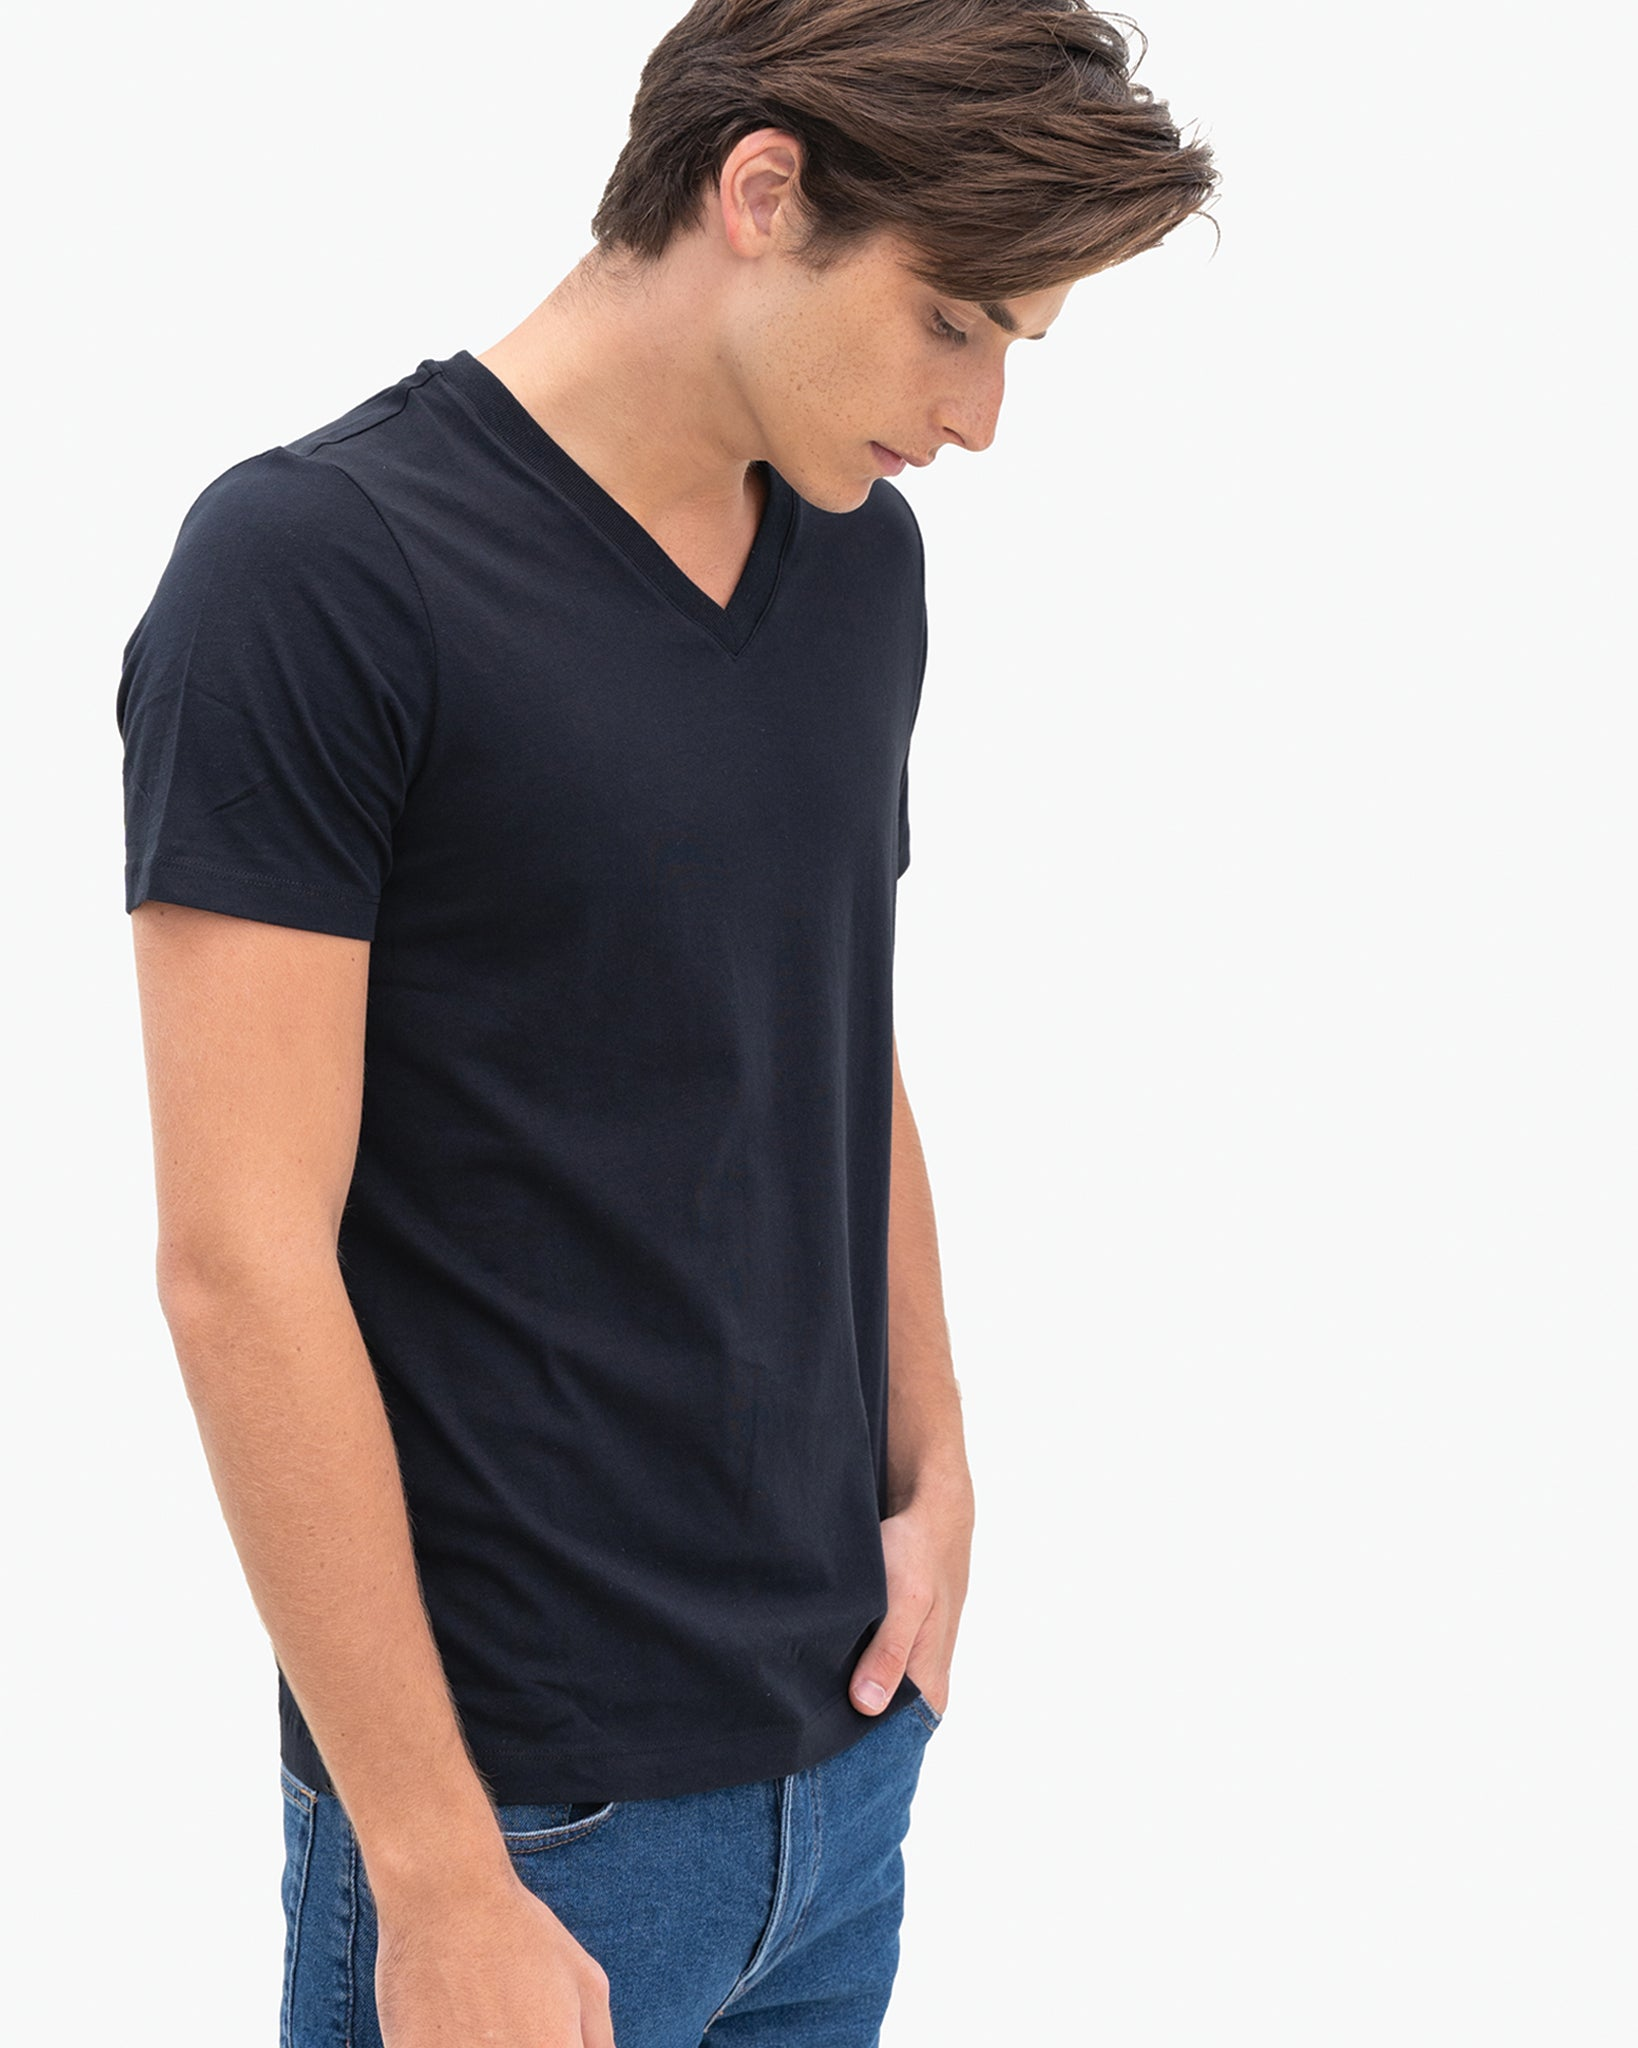 Men Organic Cotton V Neck T-shirt Black Featured